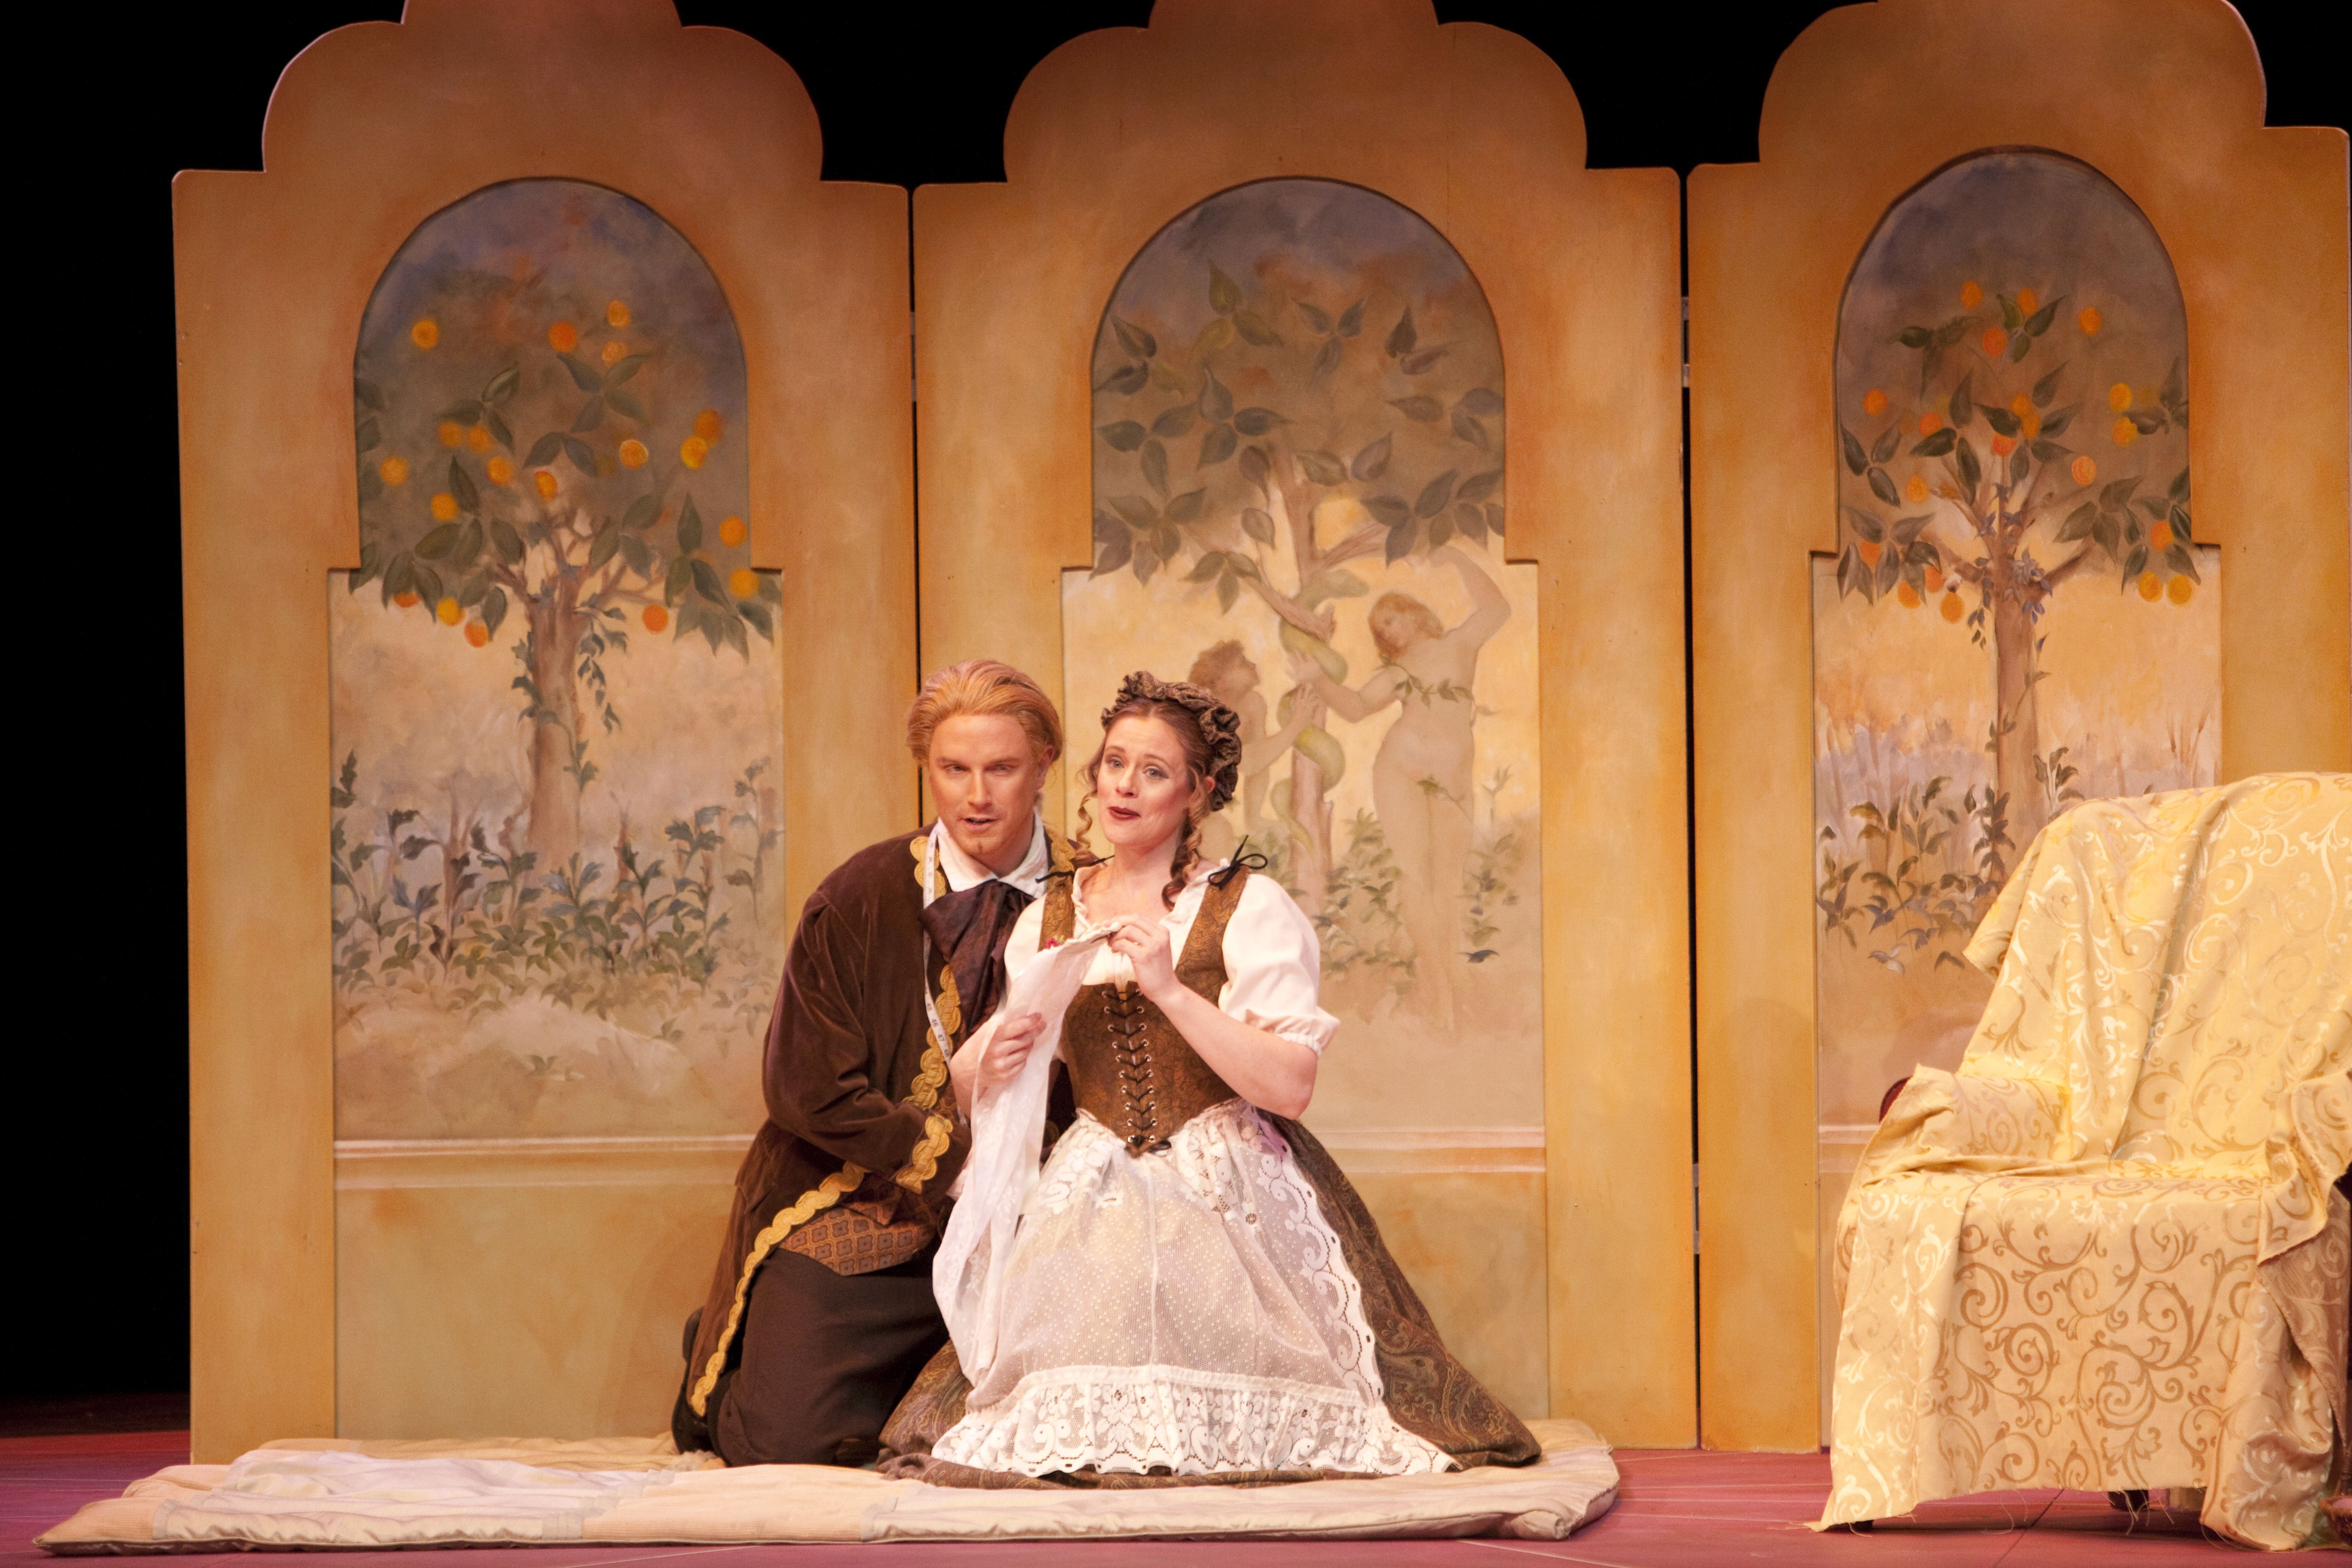 Pin Auf Marriage Of Figaro